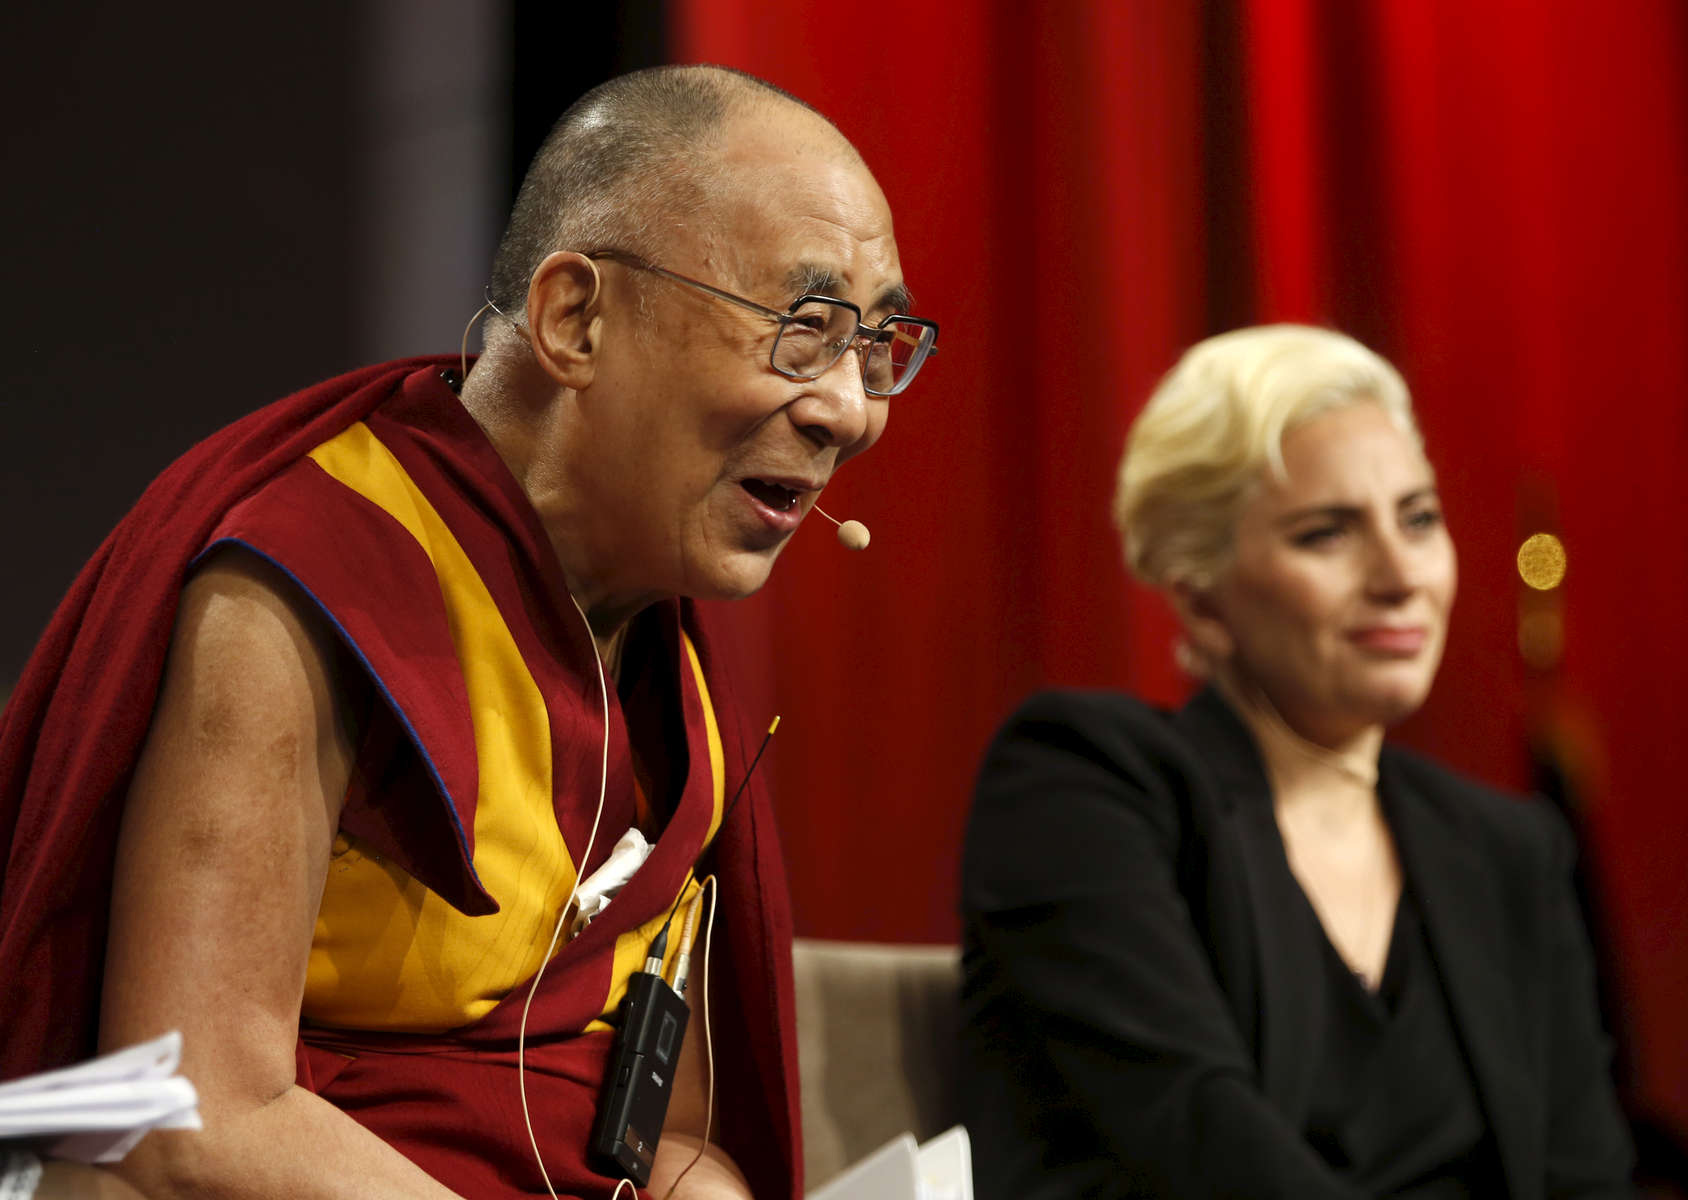 The Dalai Lama chuckles during a panel featuring himself and Lady Gaga during The United States Conference of Mayors in Indianapolis, Indiana Sunday June 26, 2016.